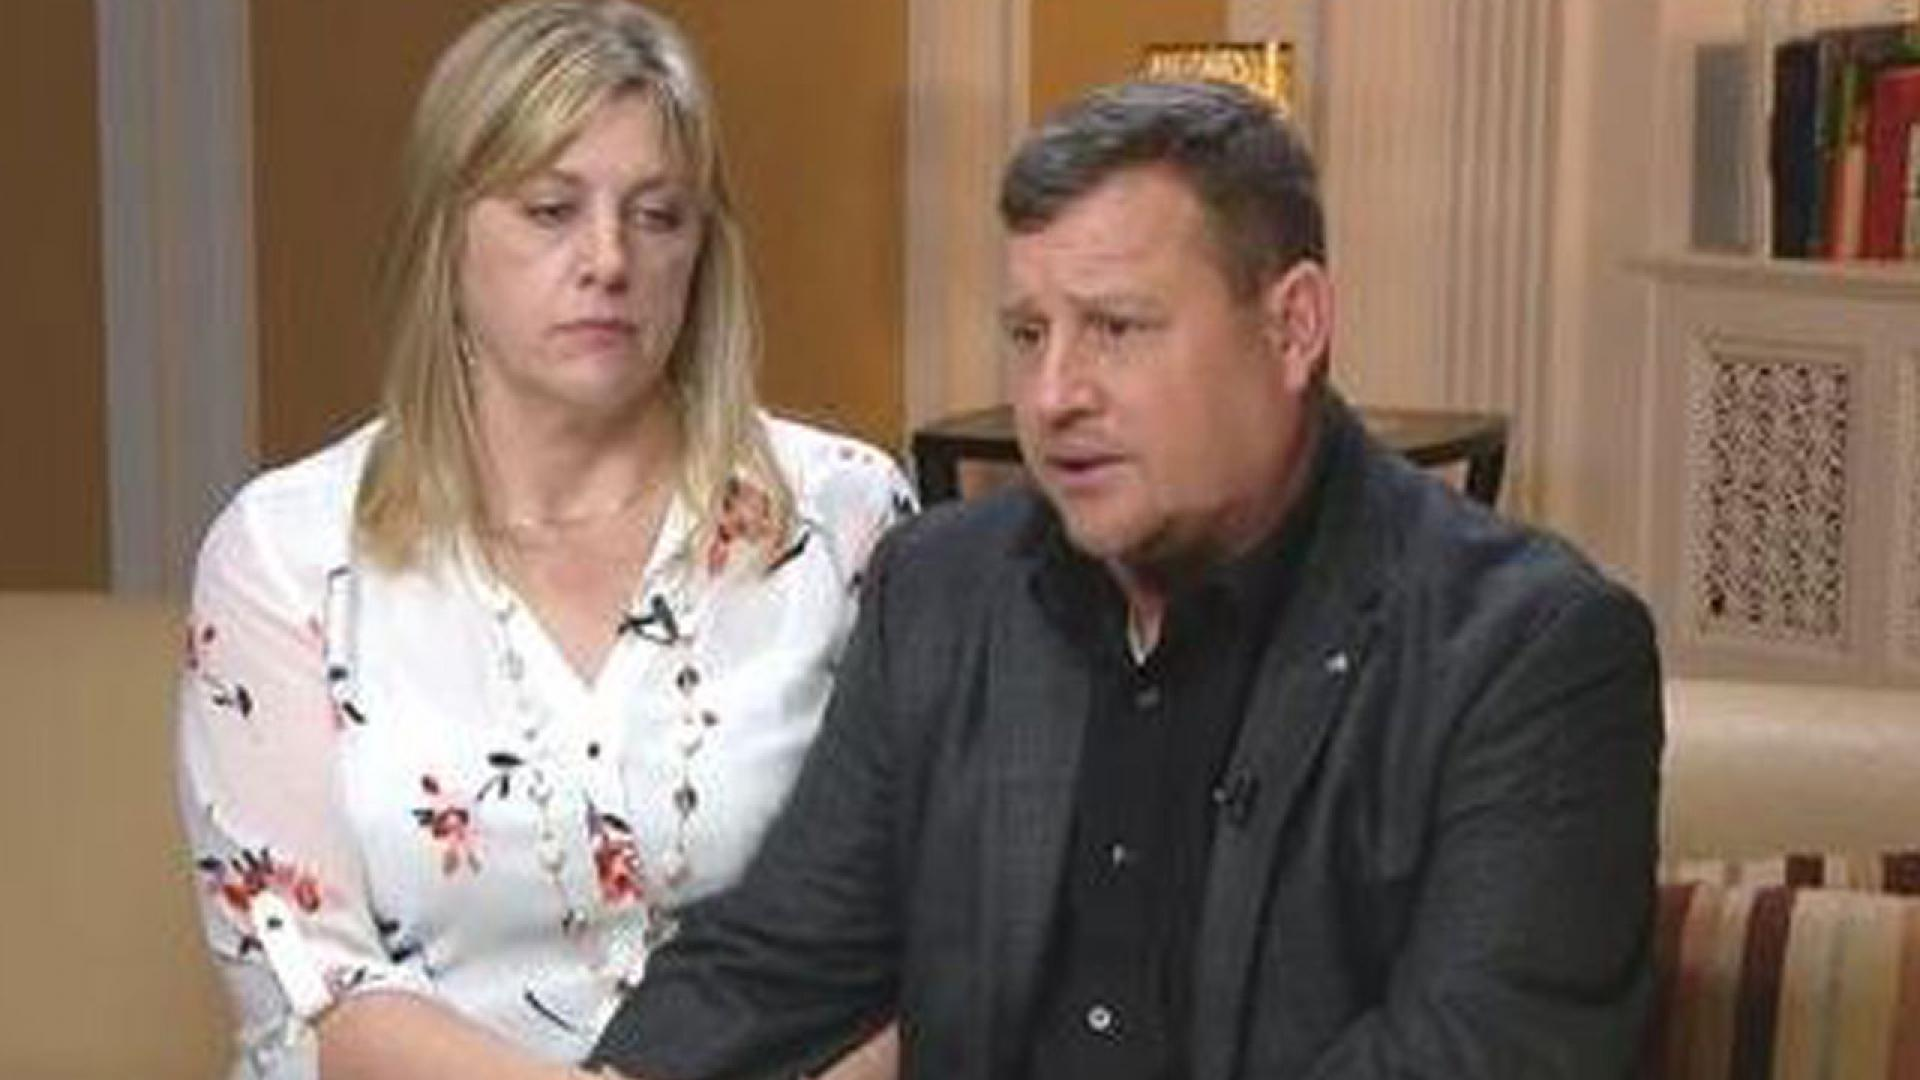 Kimberly and James Snead took in their son's friend, Nikolas Cruz, after his mother died in November.